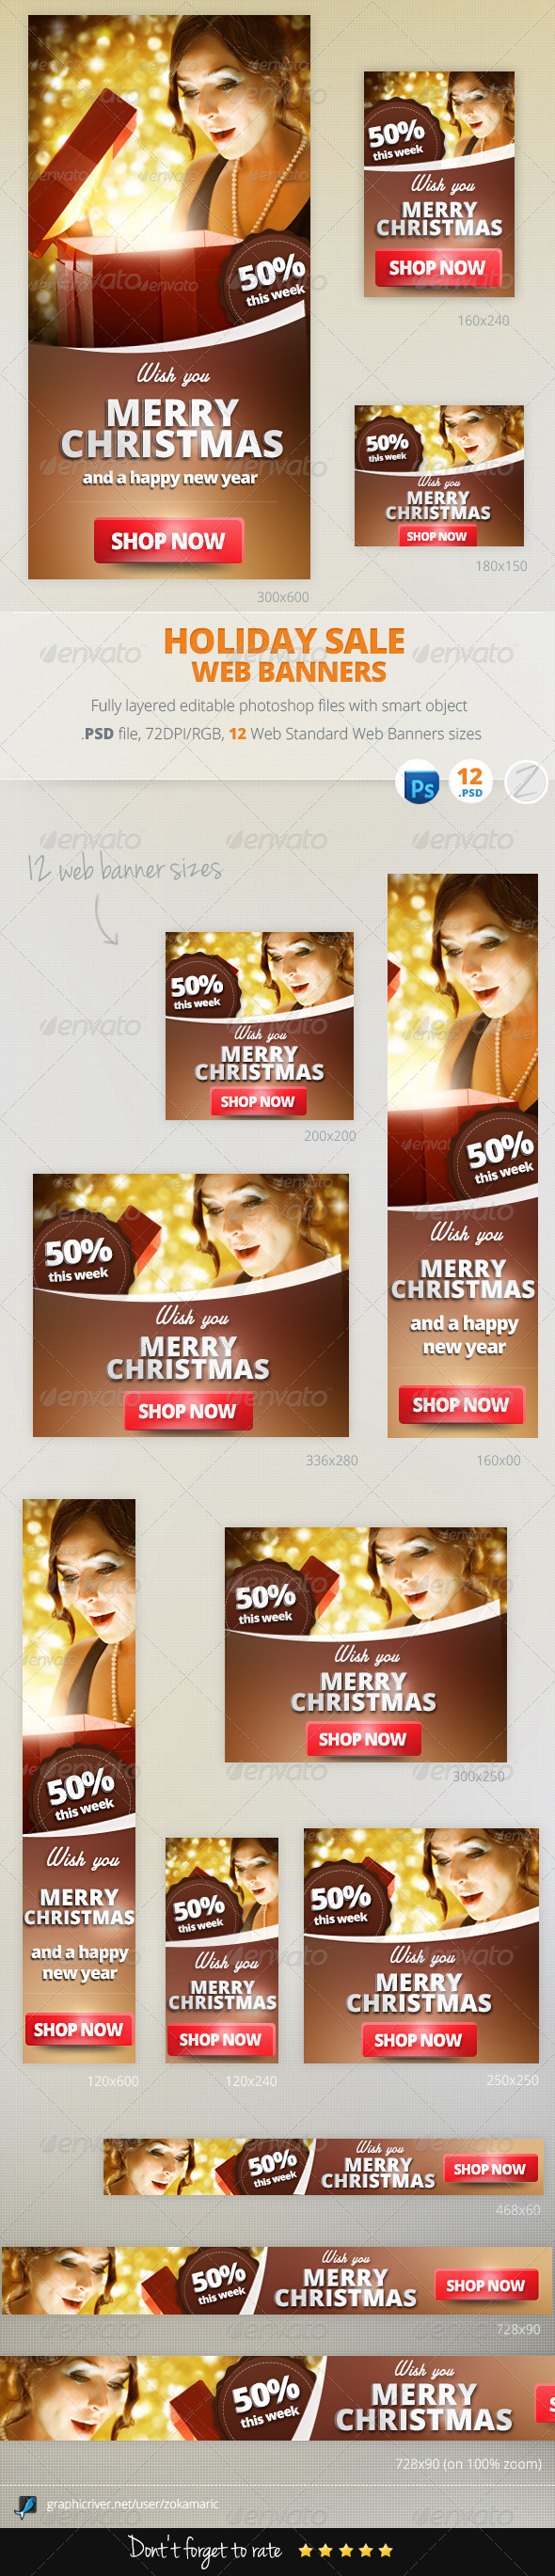 GraphicRiver Holiday Sale Web Banners 6361550